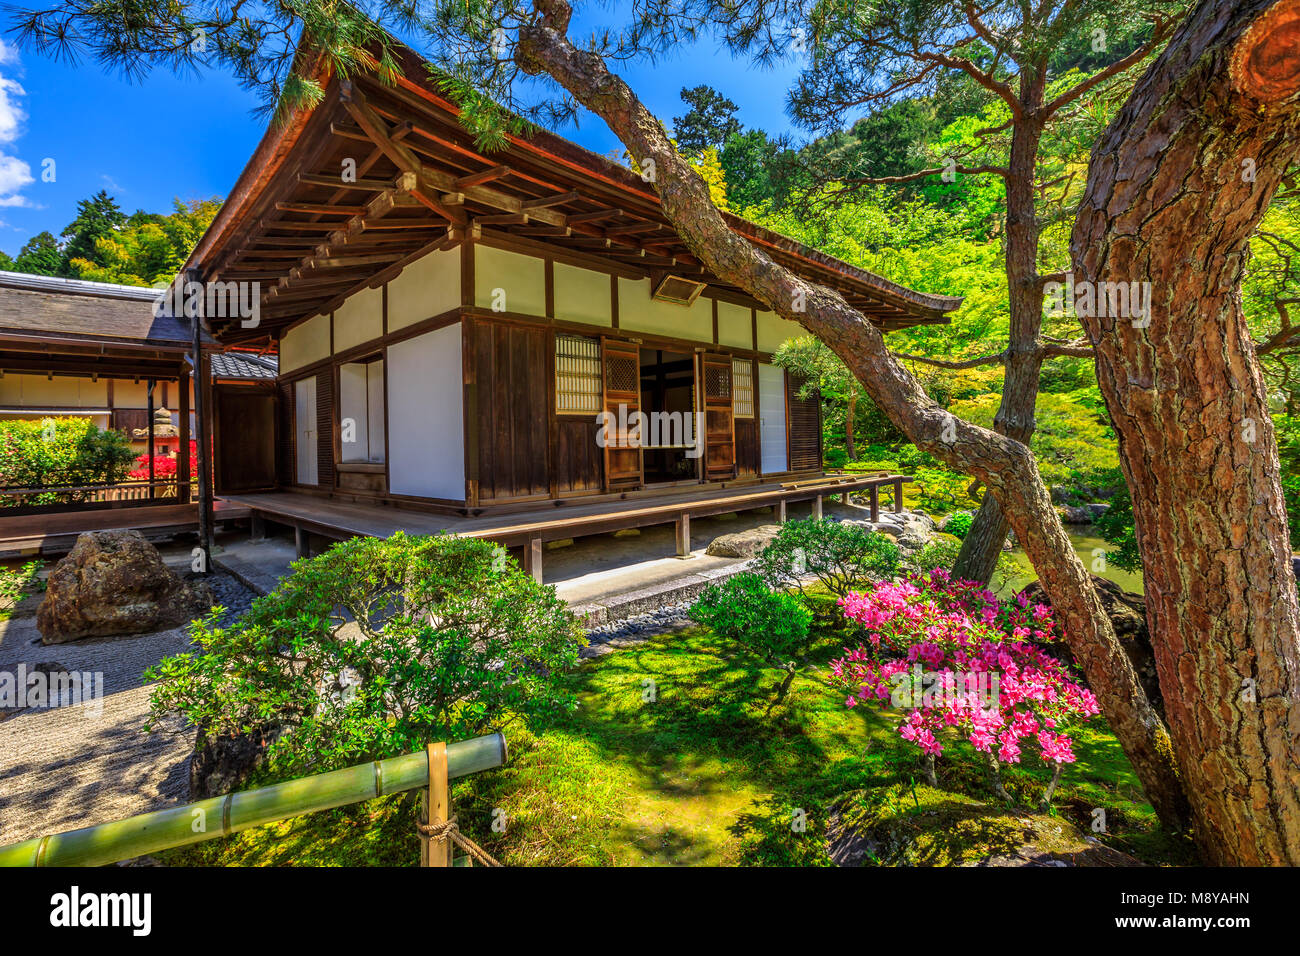 Kannon-Hall at popular landmark Ginkaku-ji Temple or Silver Pavilion in spring season with blue sky. Ginkakuji officially - Stock Image